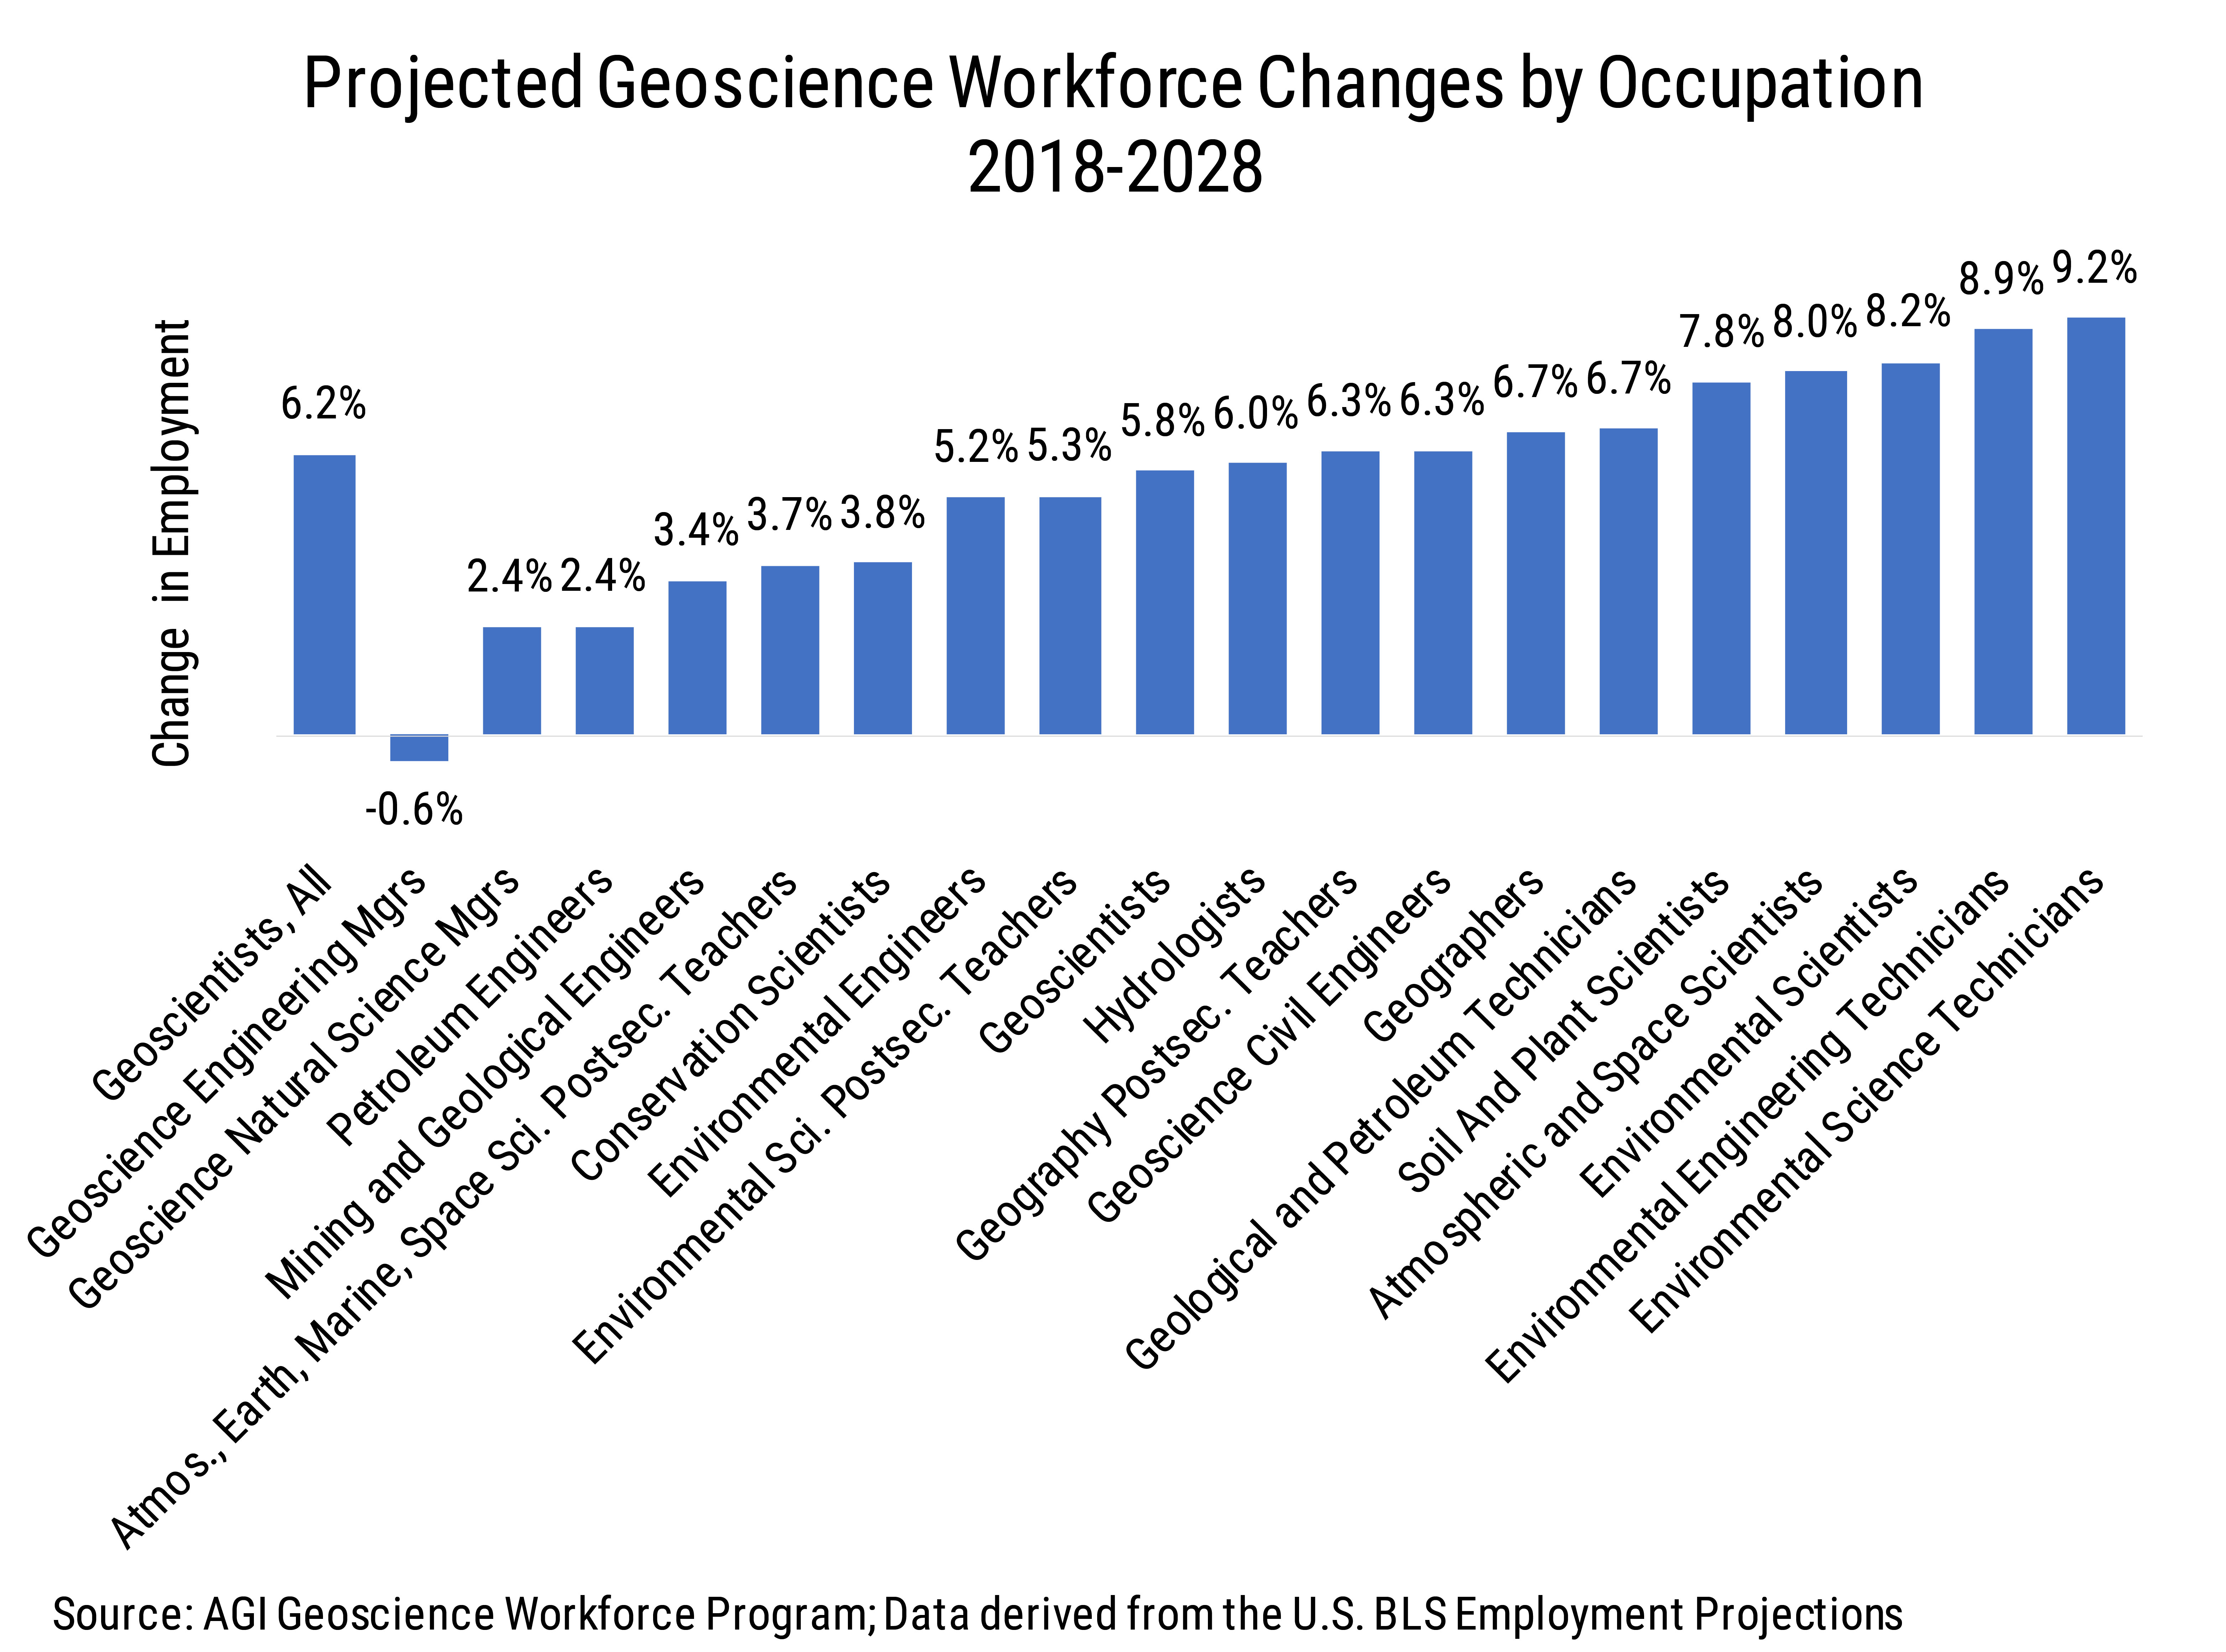 Data Brief 2009-010 chart01: Projected Geoscience Workforce Changes by Occupation (2018-2028)